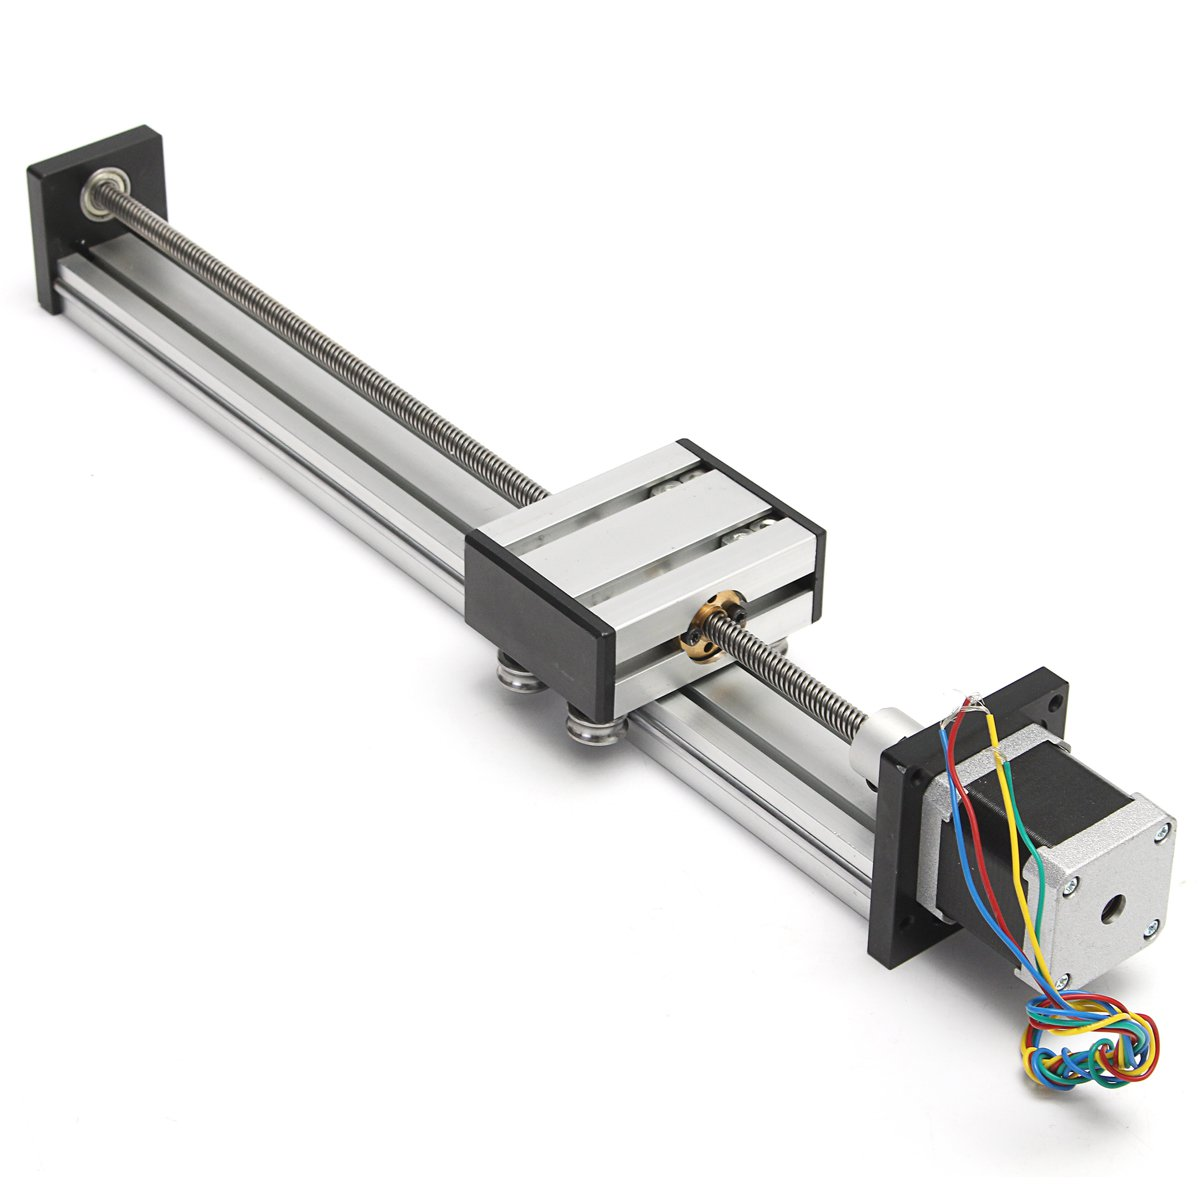 CNC Linear Motion Lead Screw Slide Stage 300mm Stroke Actuator 42 Stepper Motor a funssor 50mm 150mm slide stroke cnc z axis slide linear motion nema17 stepper motor for reprap engraving machine